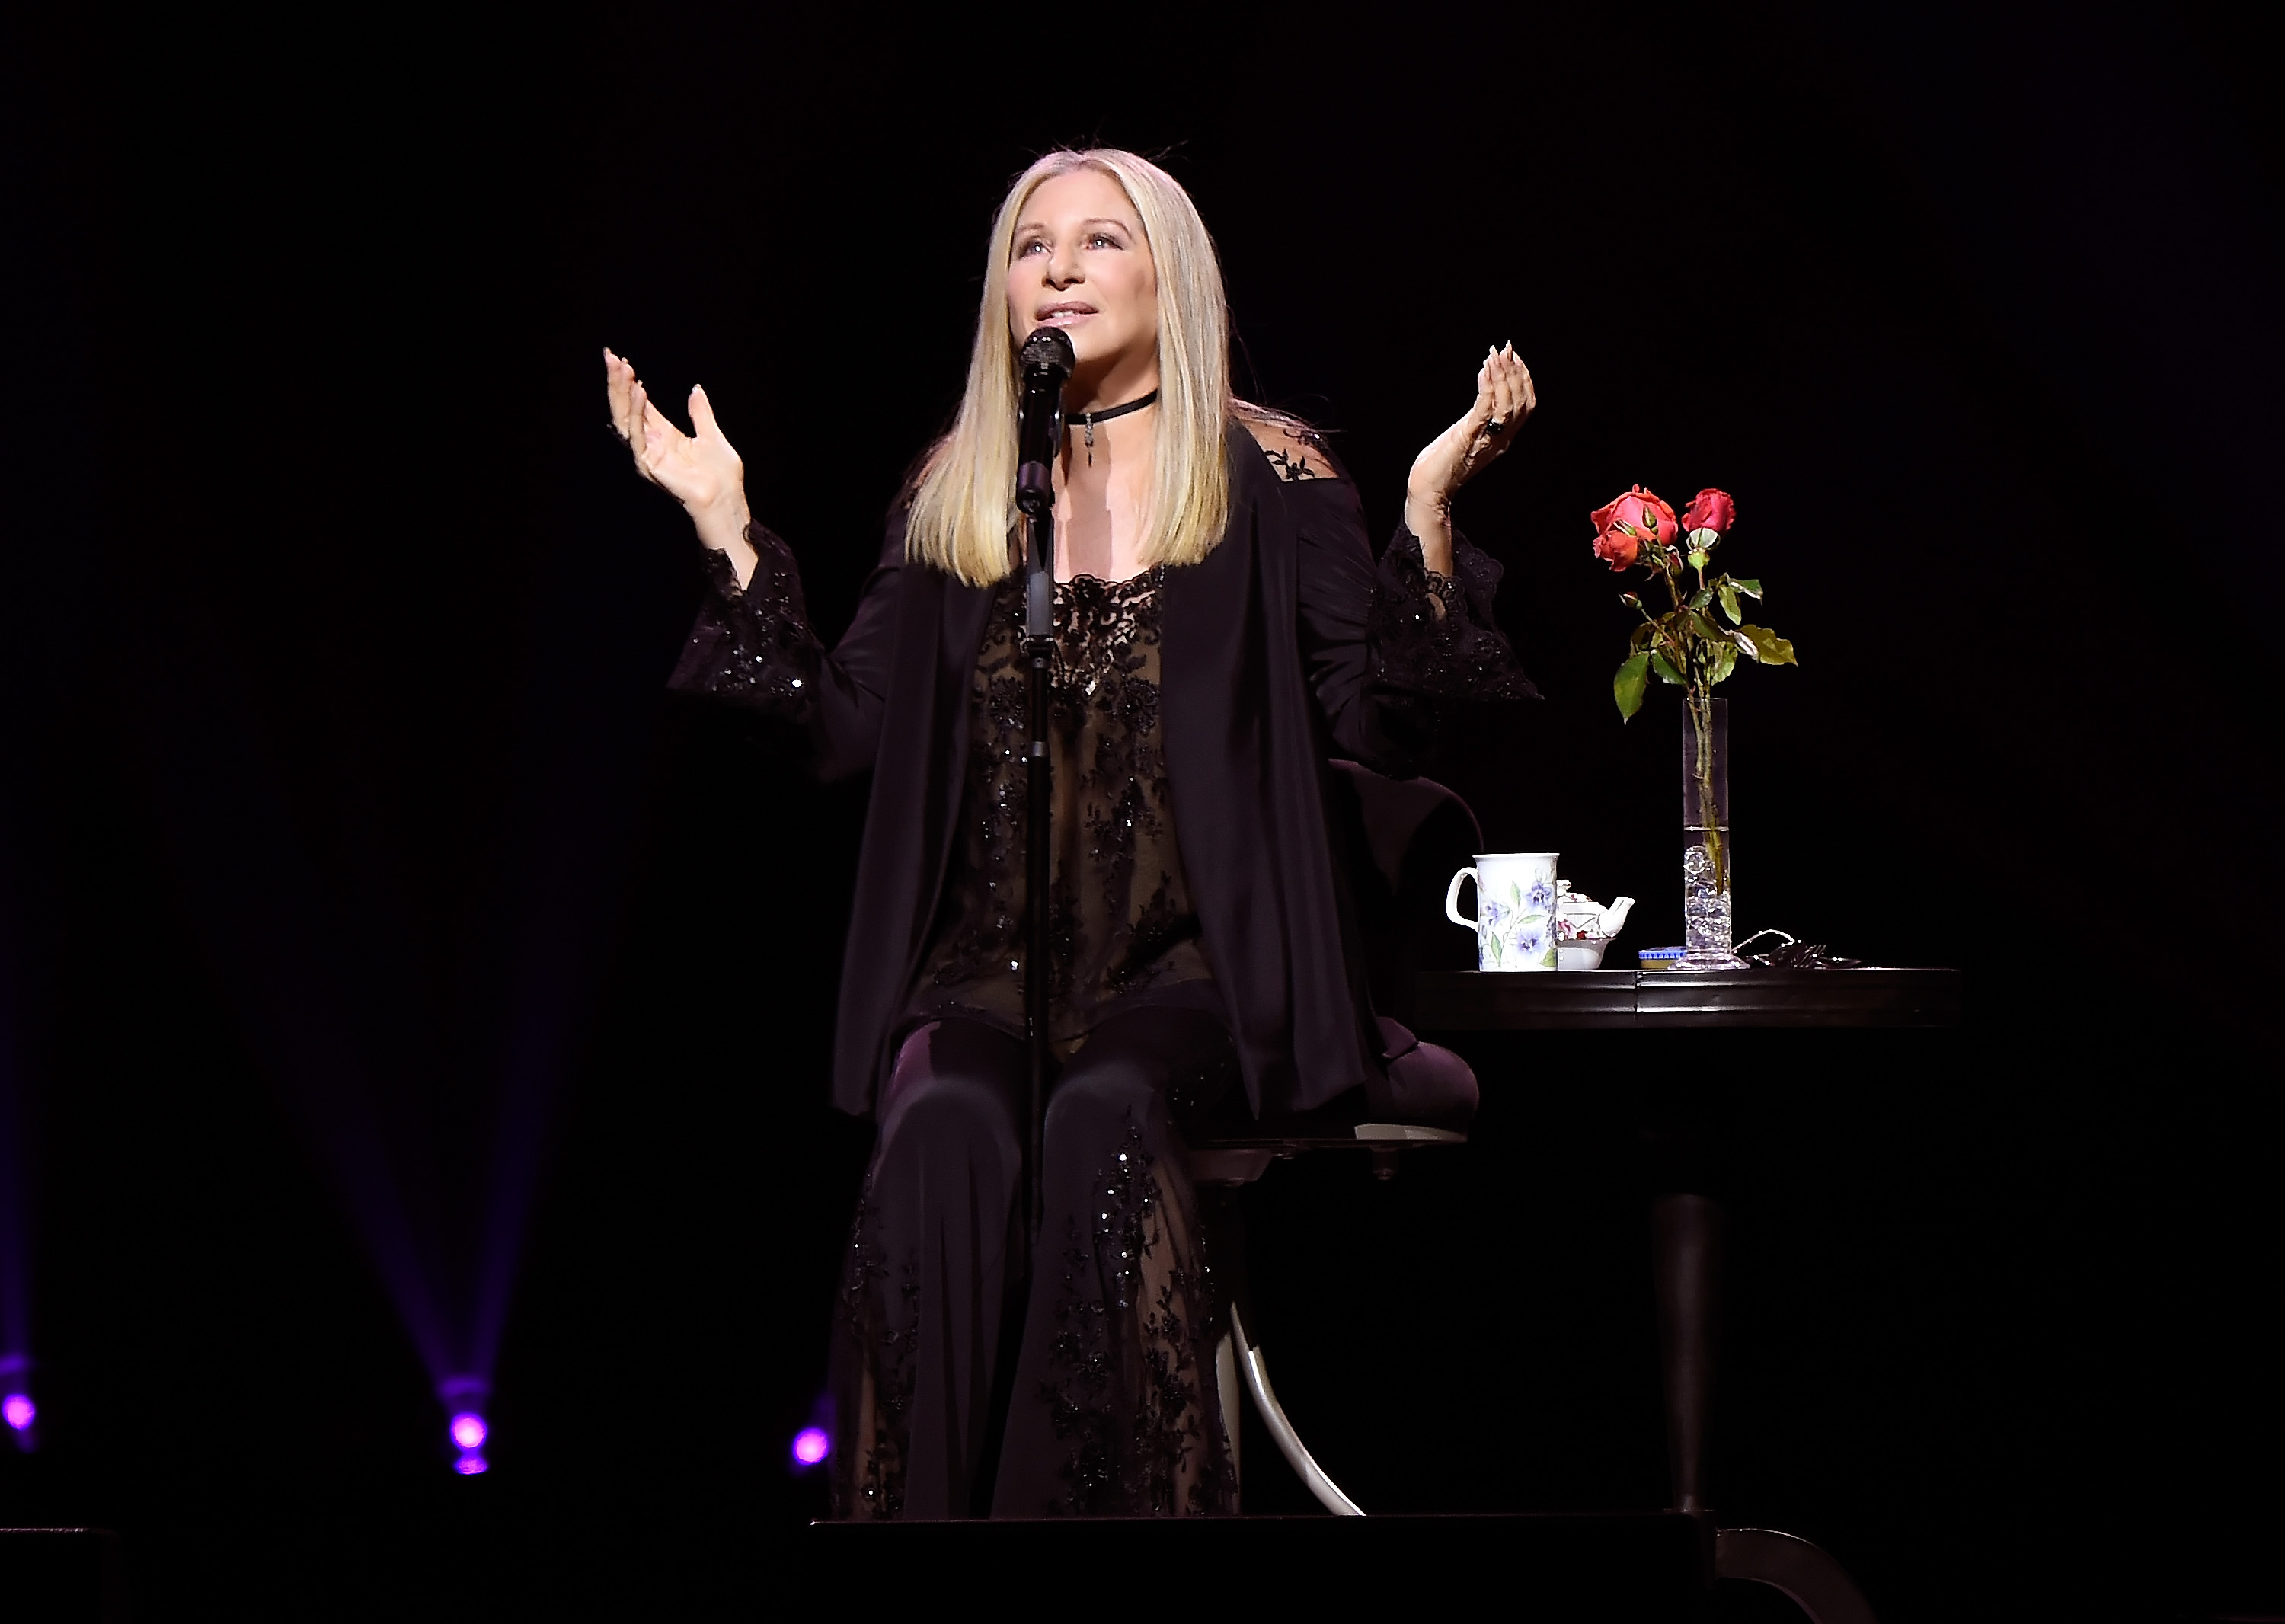 barbra-bst-hyde-park-2019